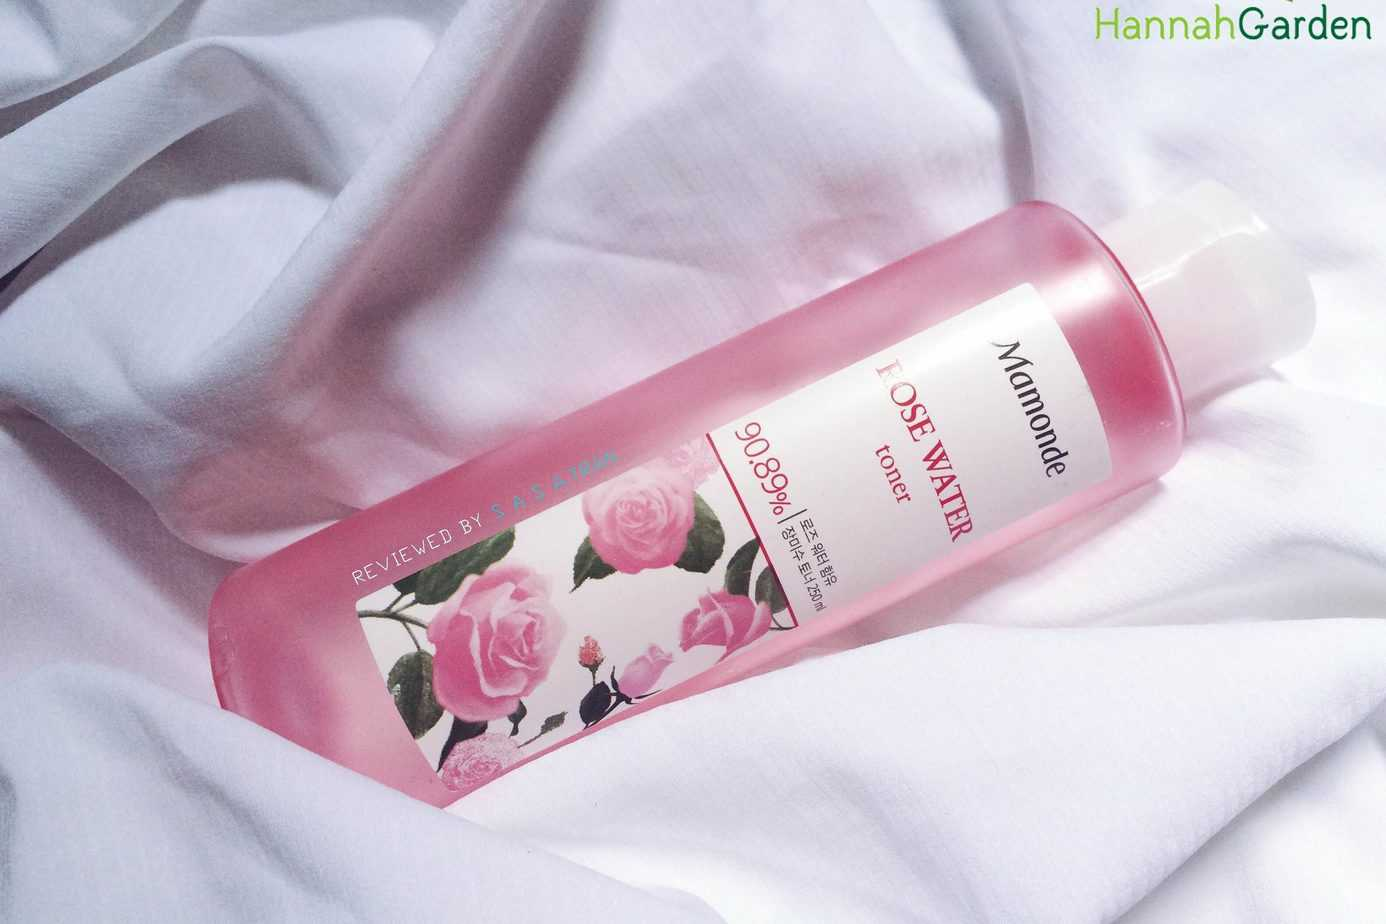 MAMONDE ROSE WATER TONER e1499771595434